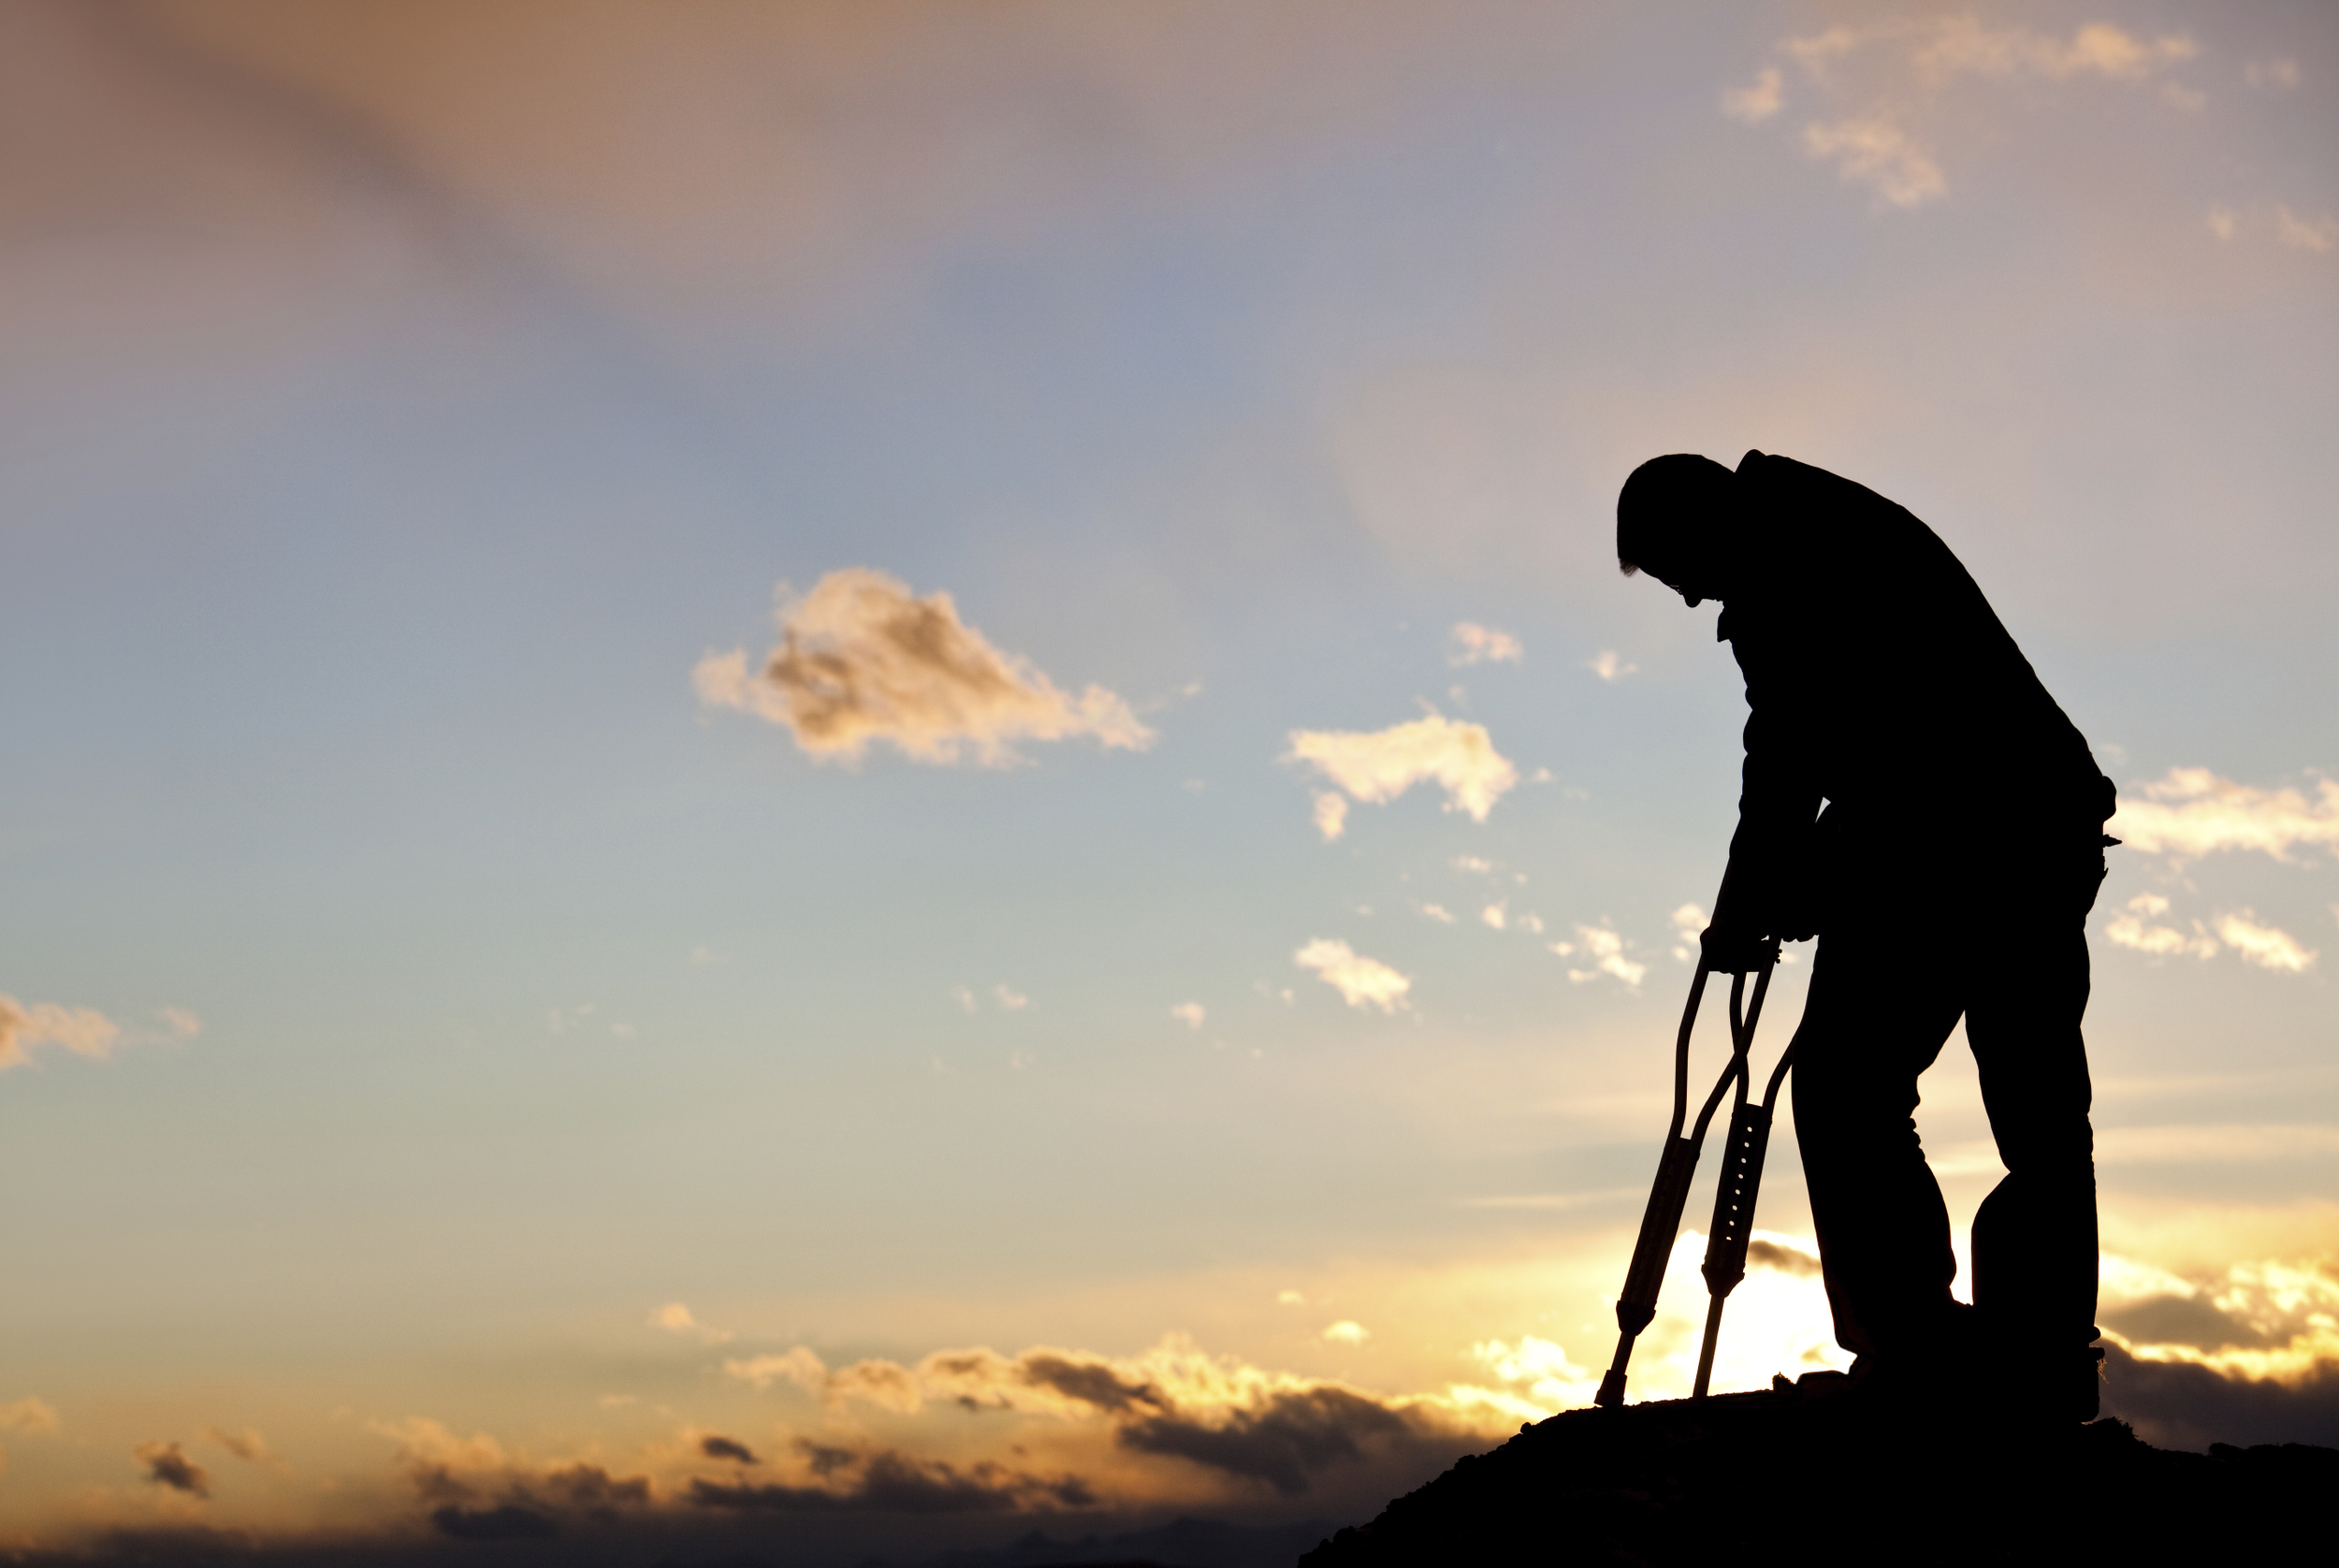 http://www.istockphoto.com/photo/silhouette-of-a-sad-injured-man-with-crutches-18496949